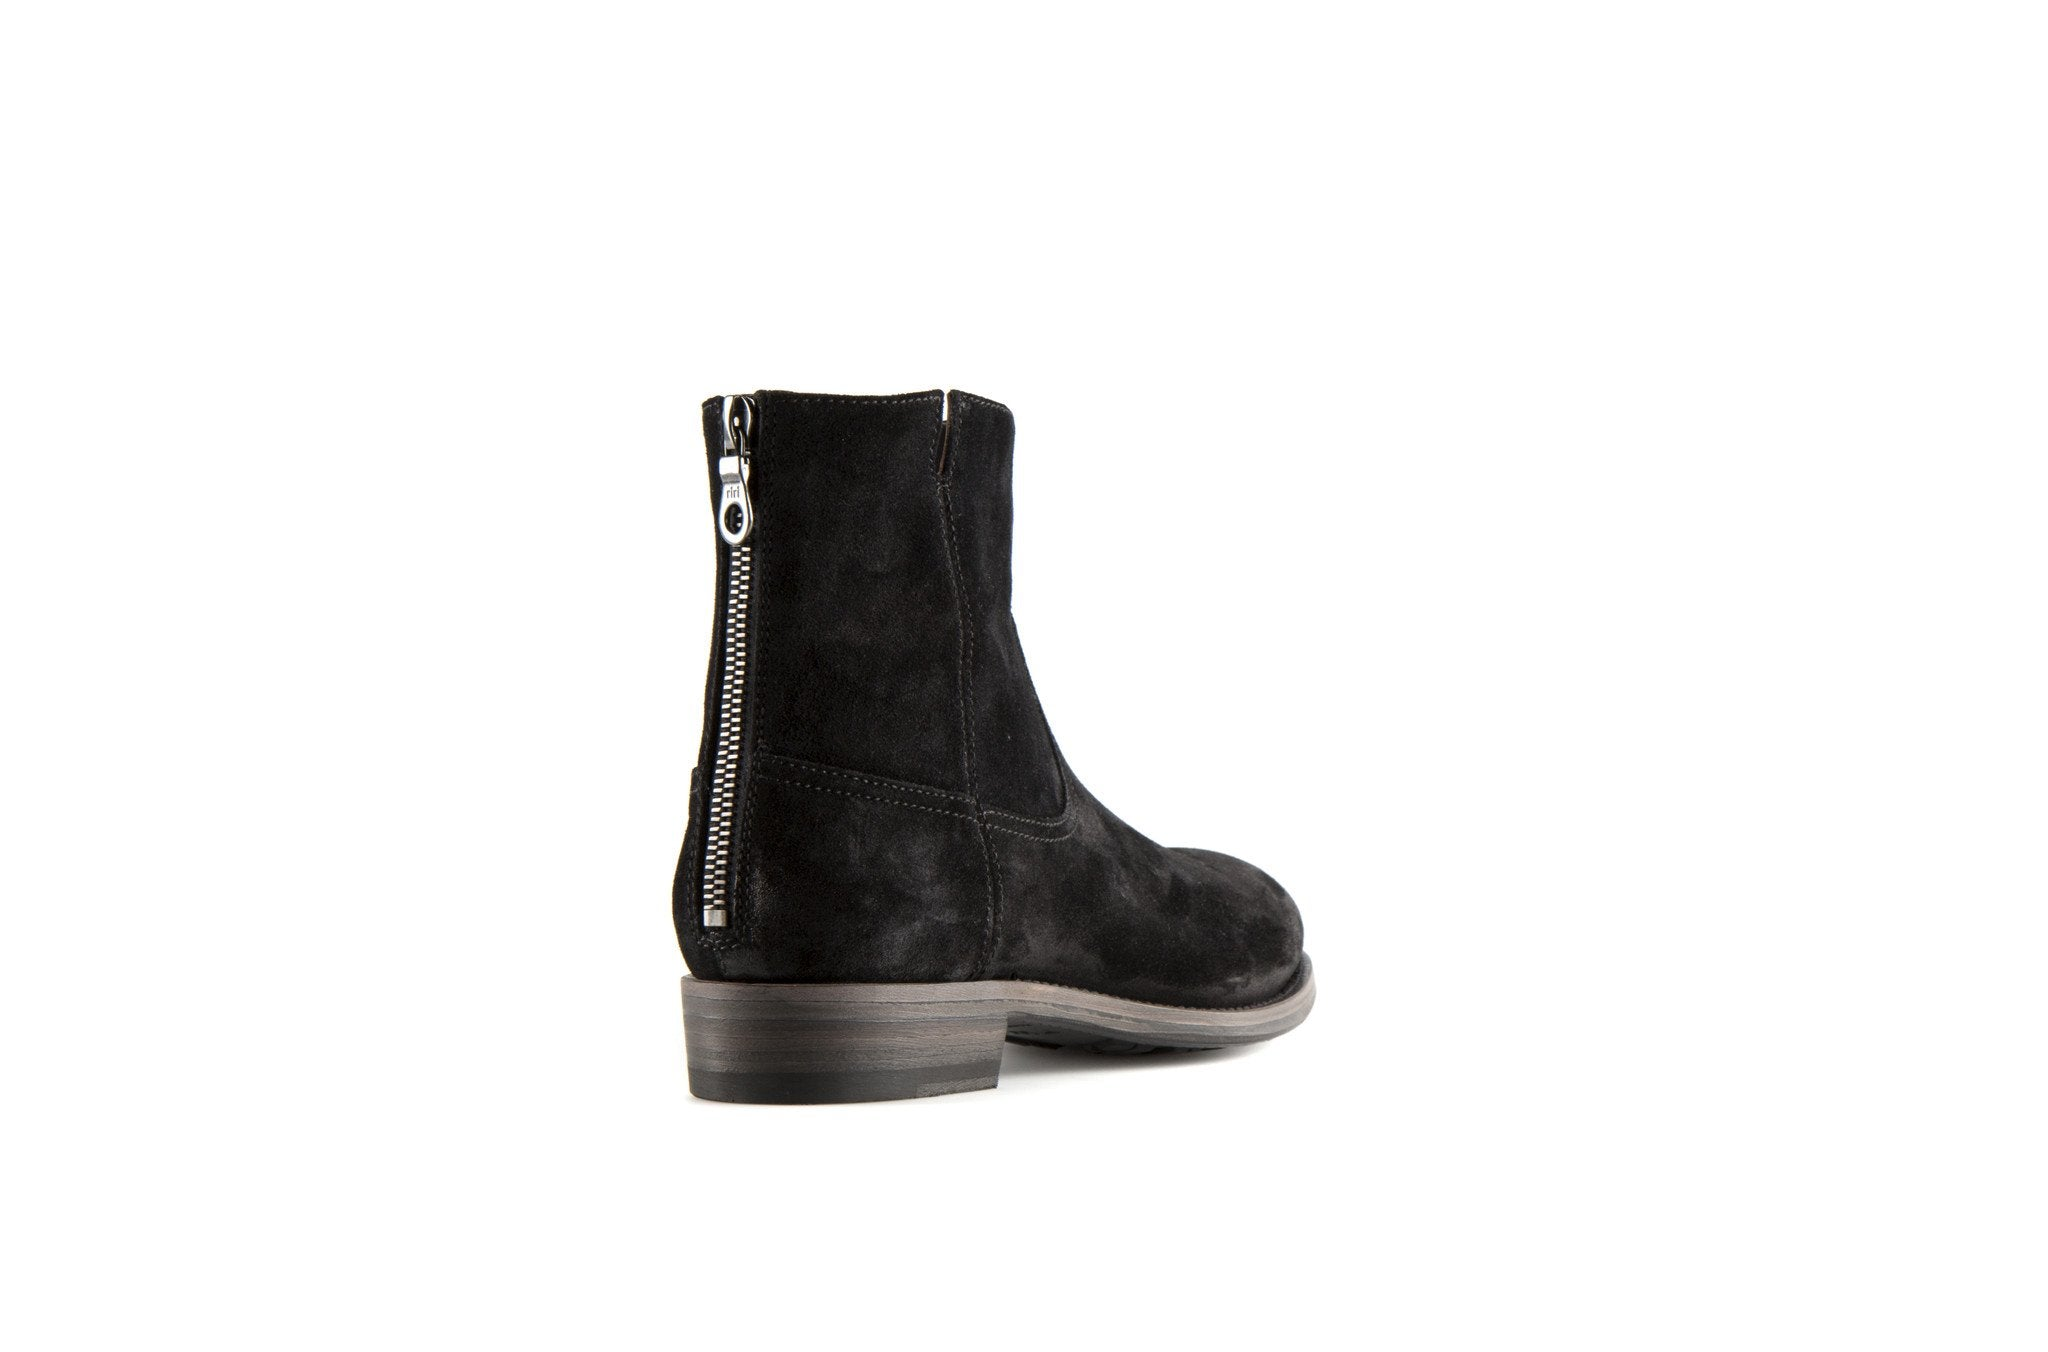 Flame Black Suede Leather Zipper Boots